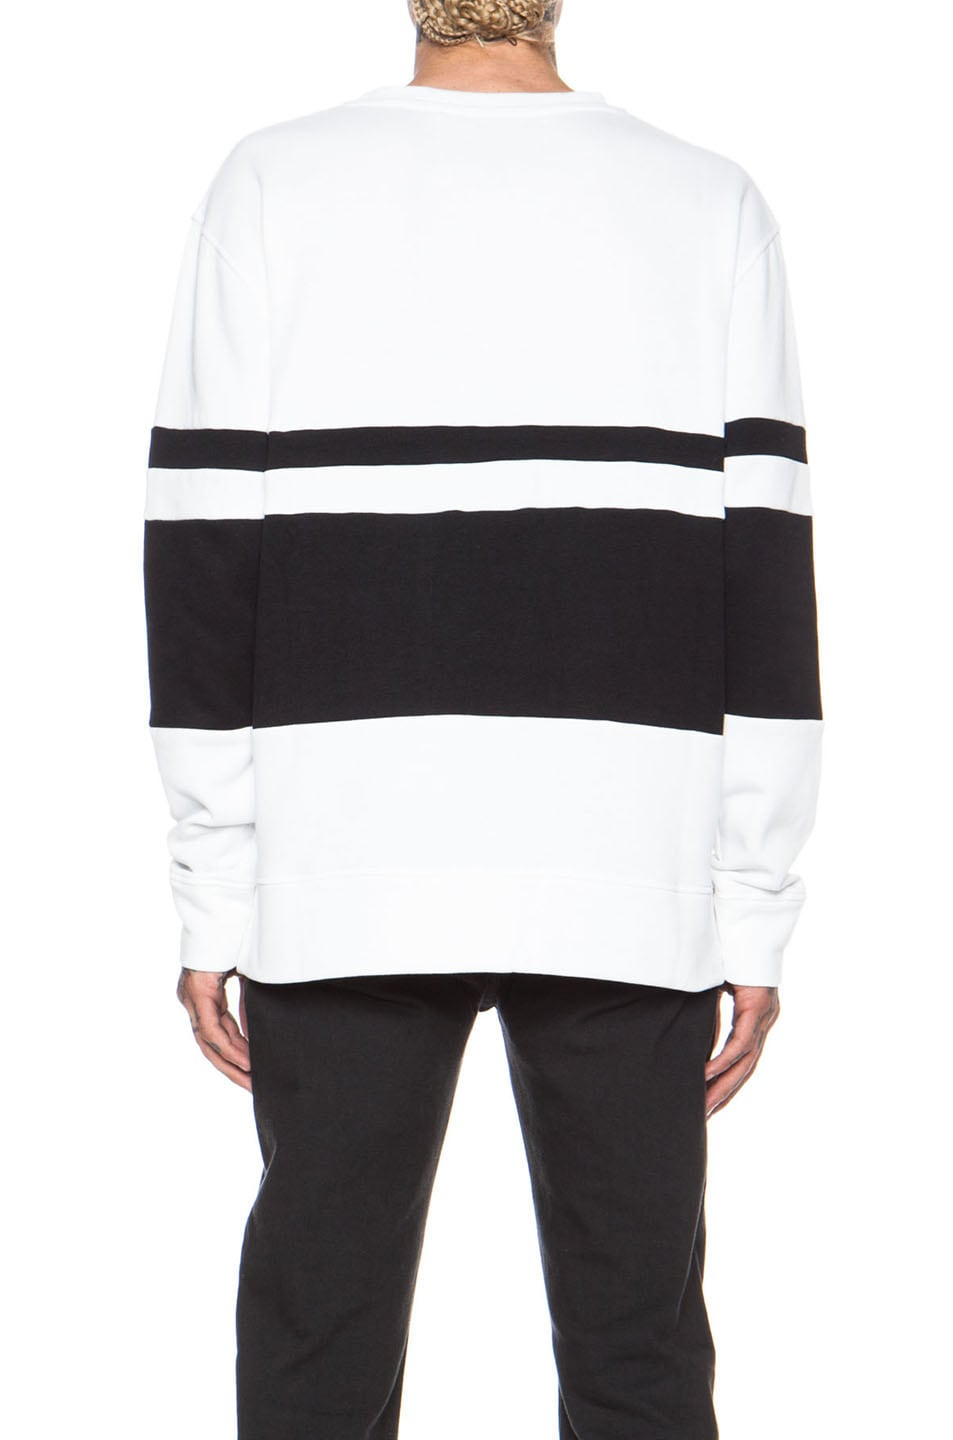 Image 4 of Casely-Hayford Whitfield Panel Stripe Cotton-Blend Sweatshirt in White